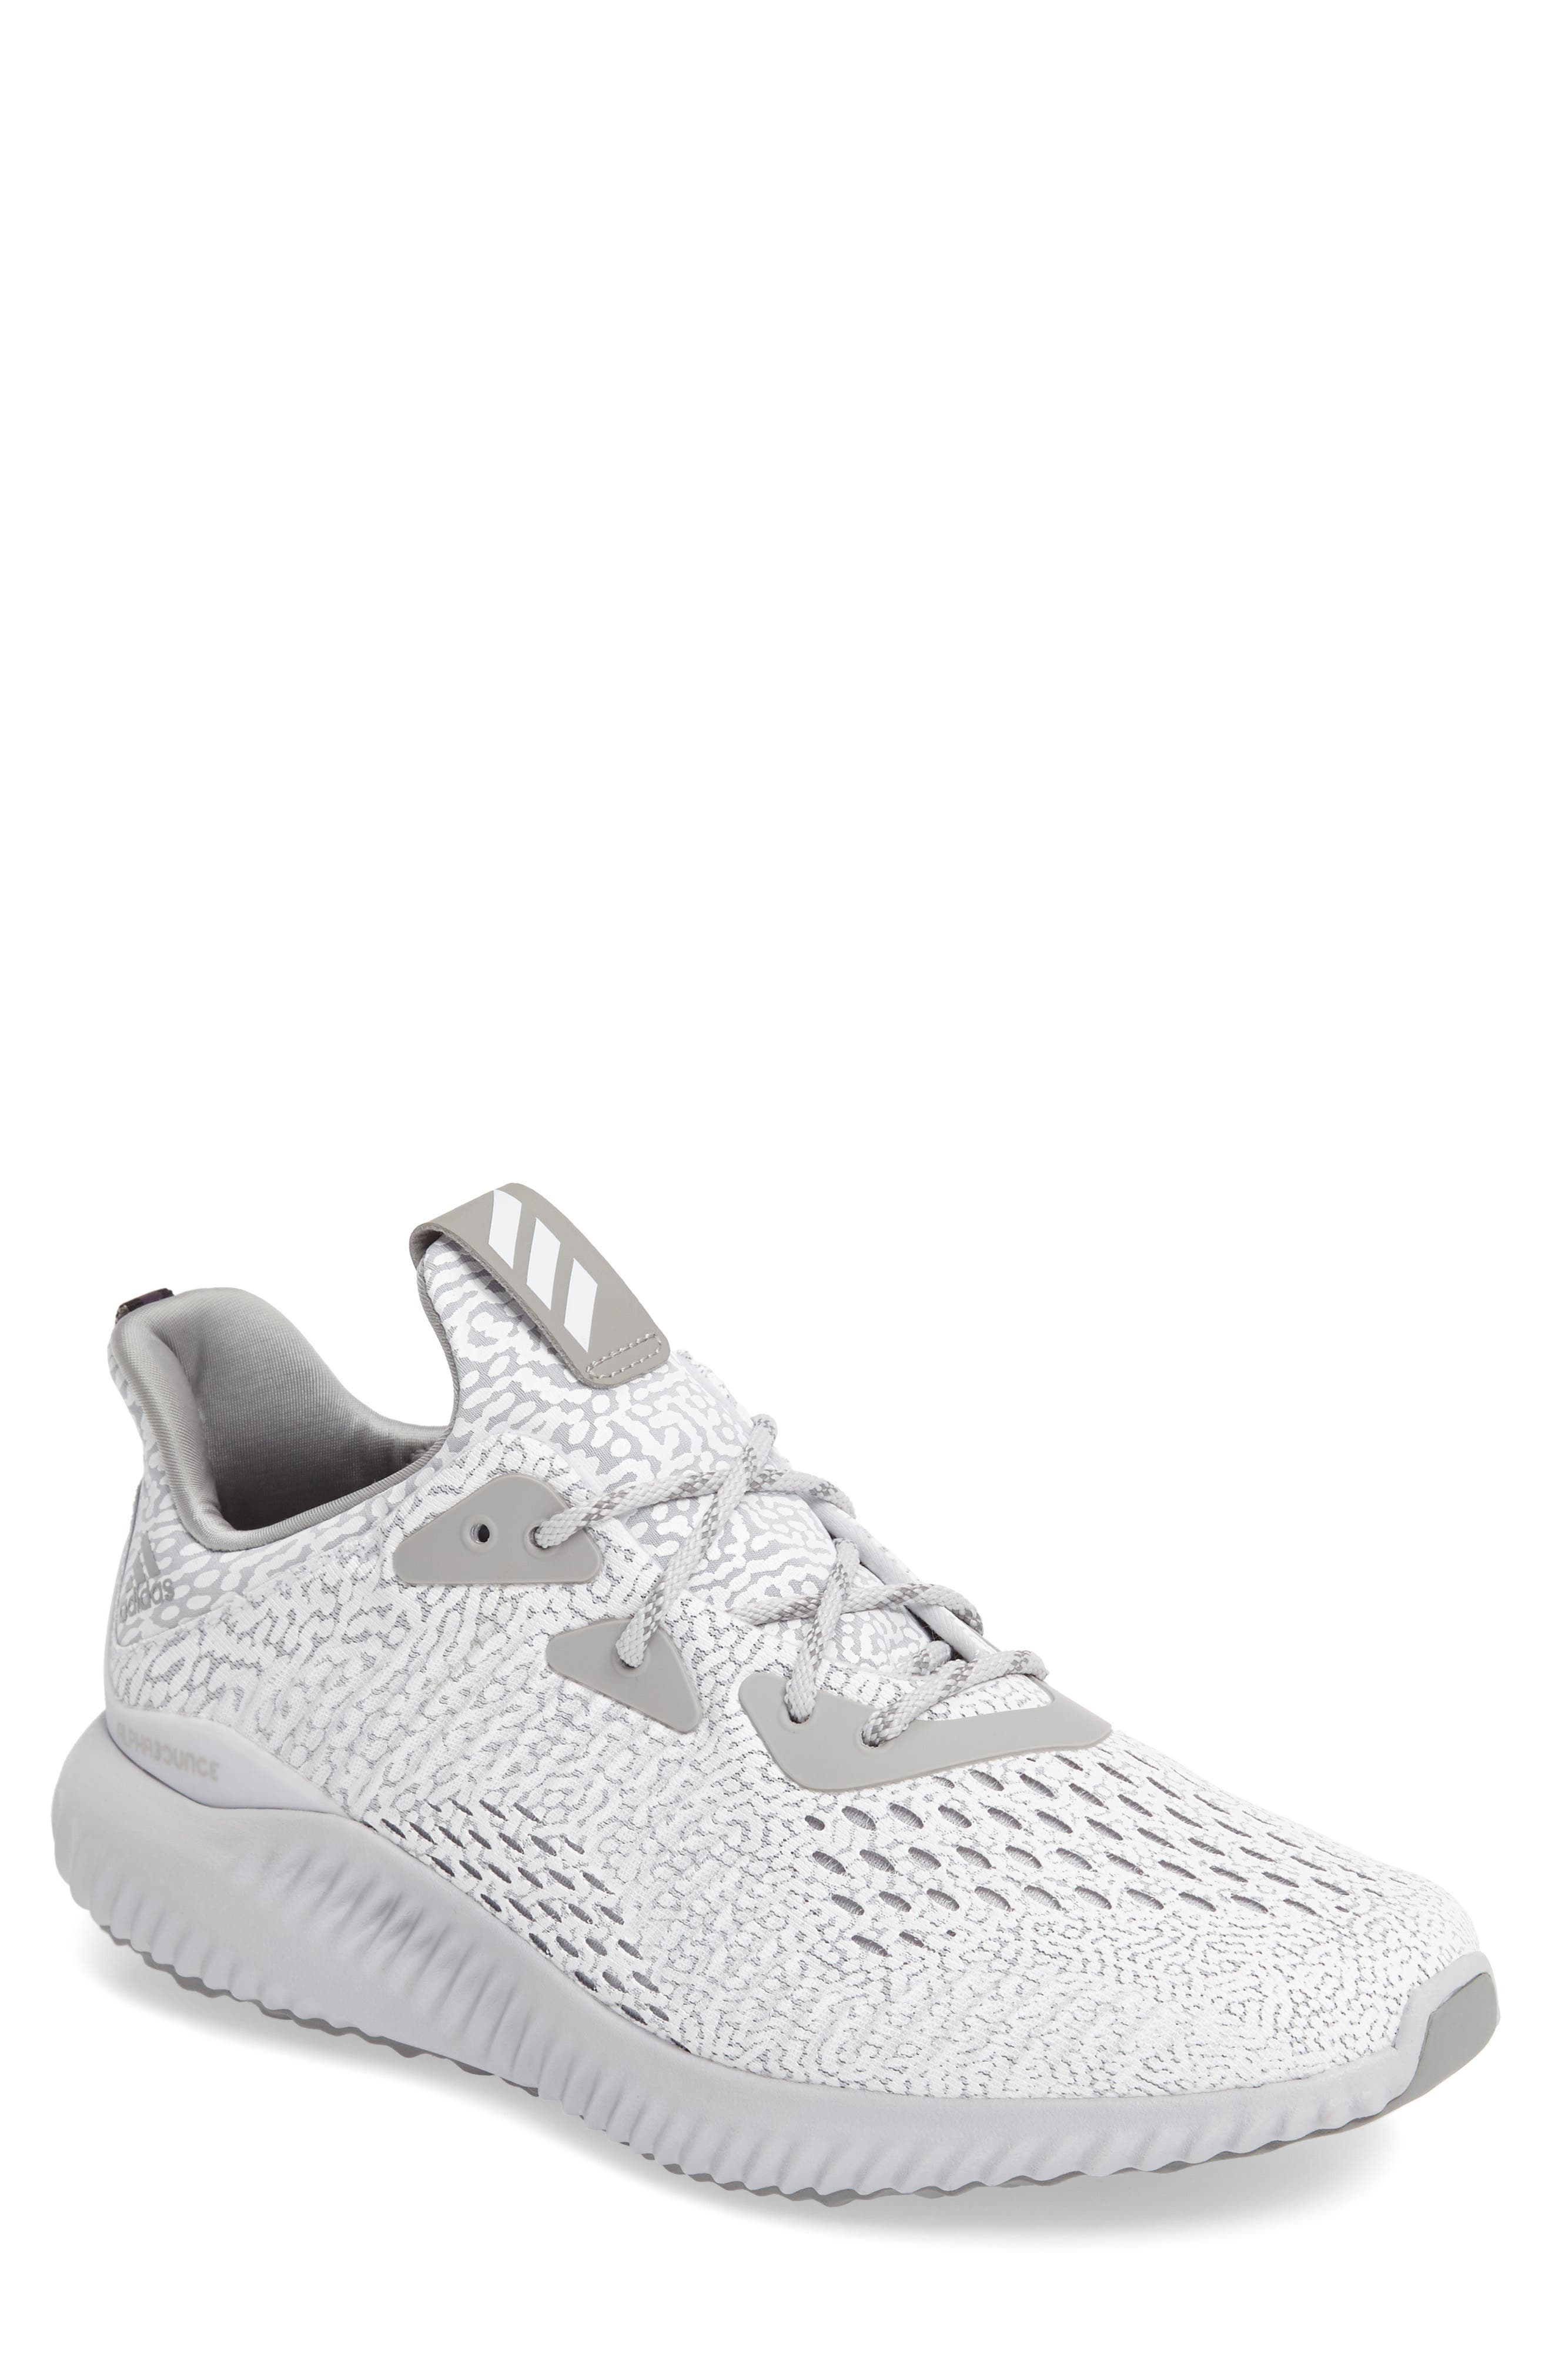 AlphaBounce Aramis Sneaker,                         Main,                         color, Clear Grey/Core Black